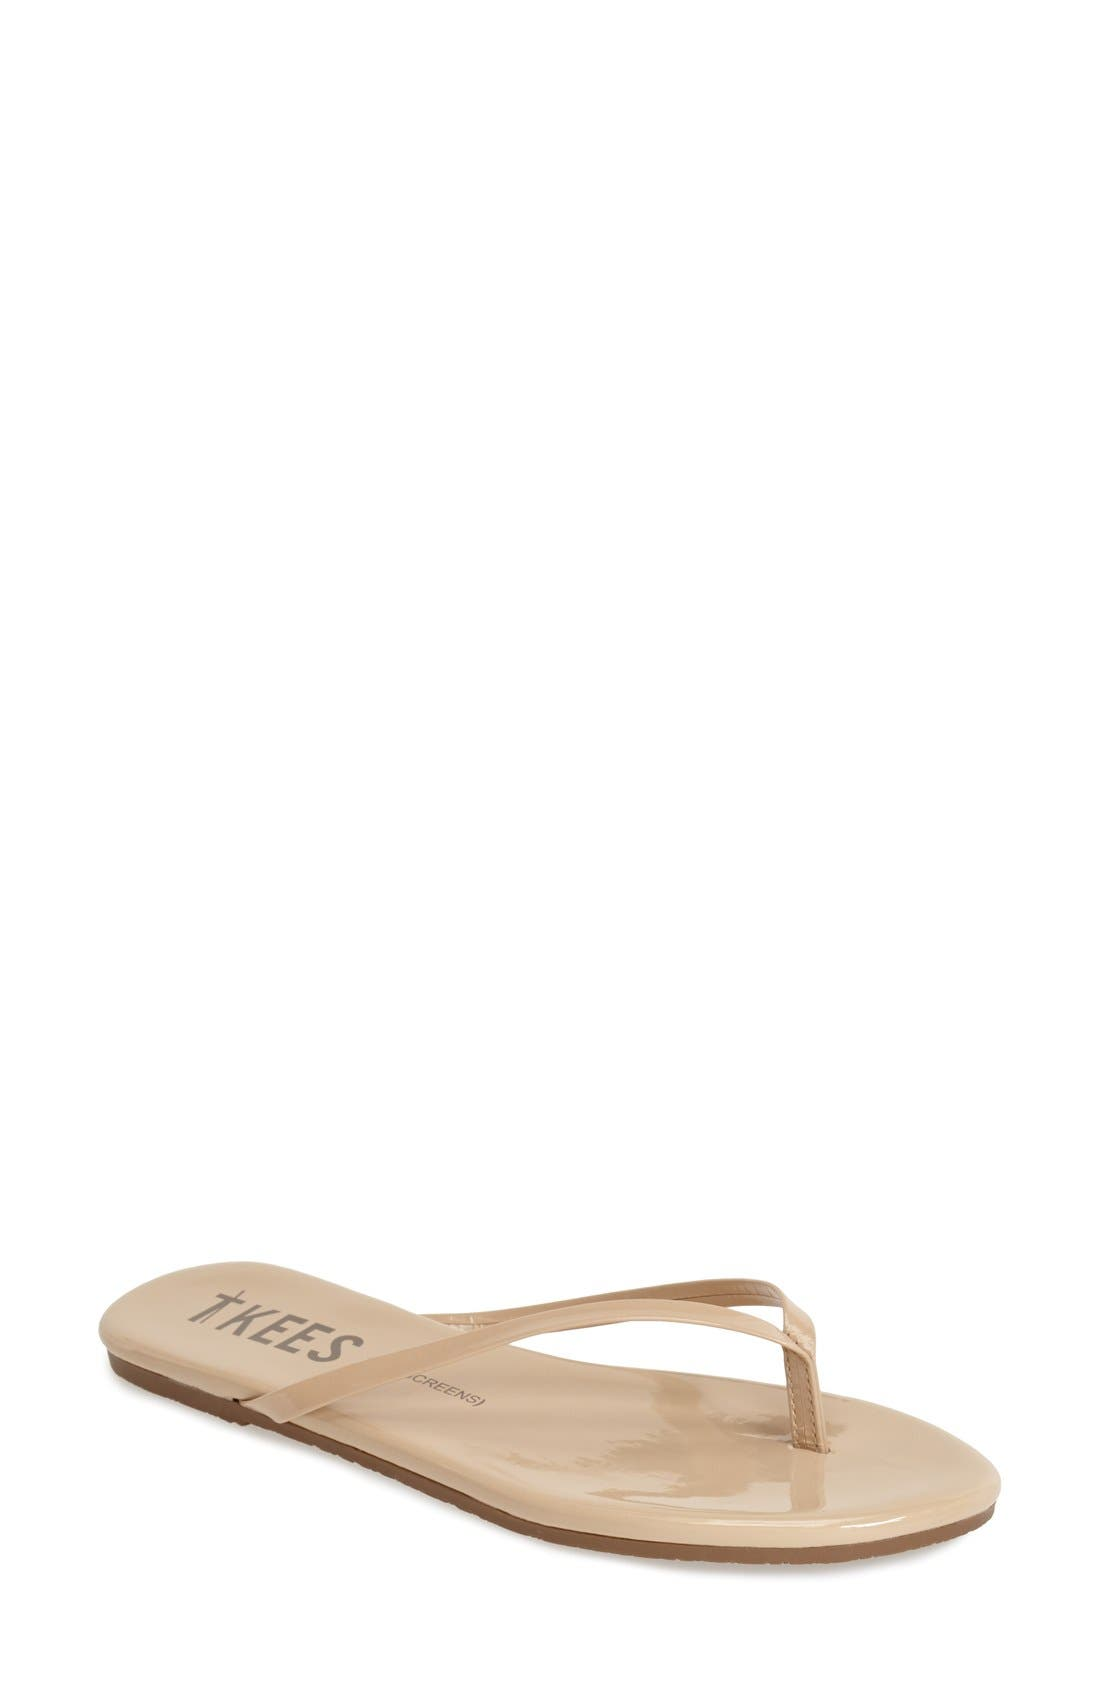 TKEES Sunscreens Flip Flop